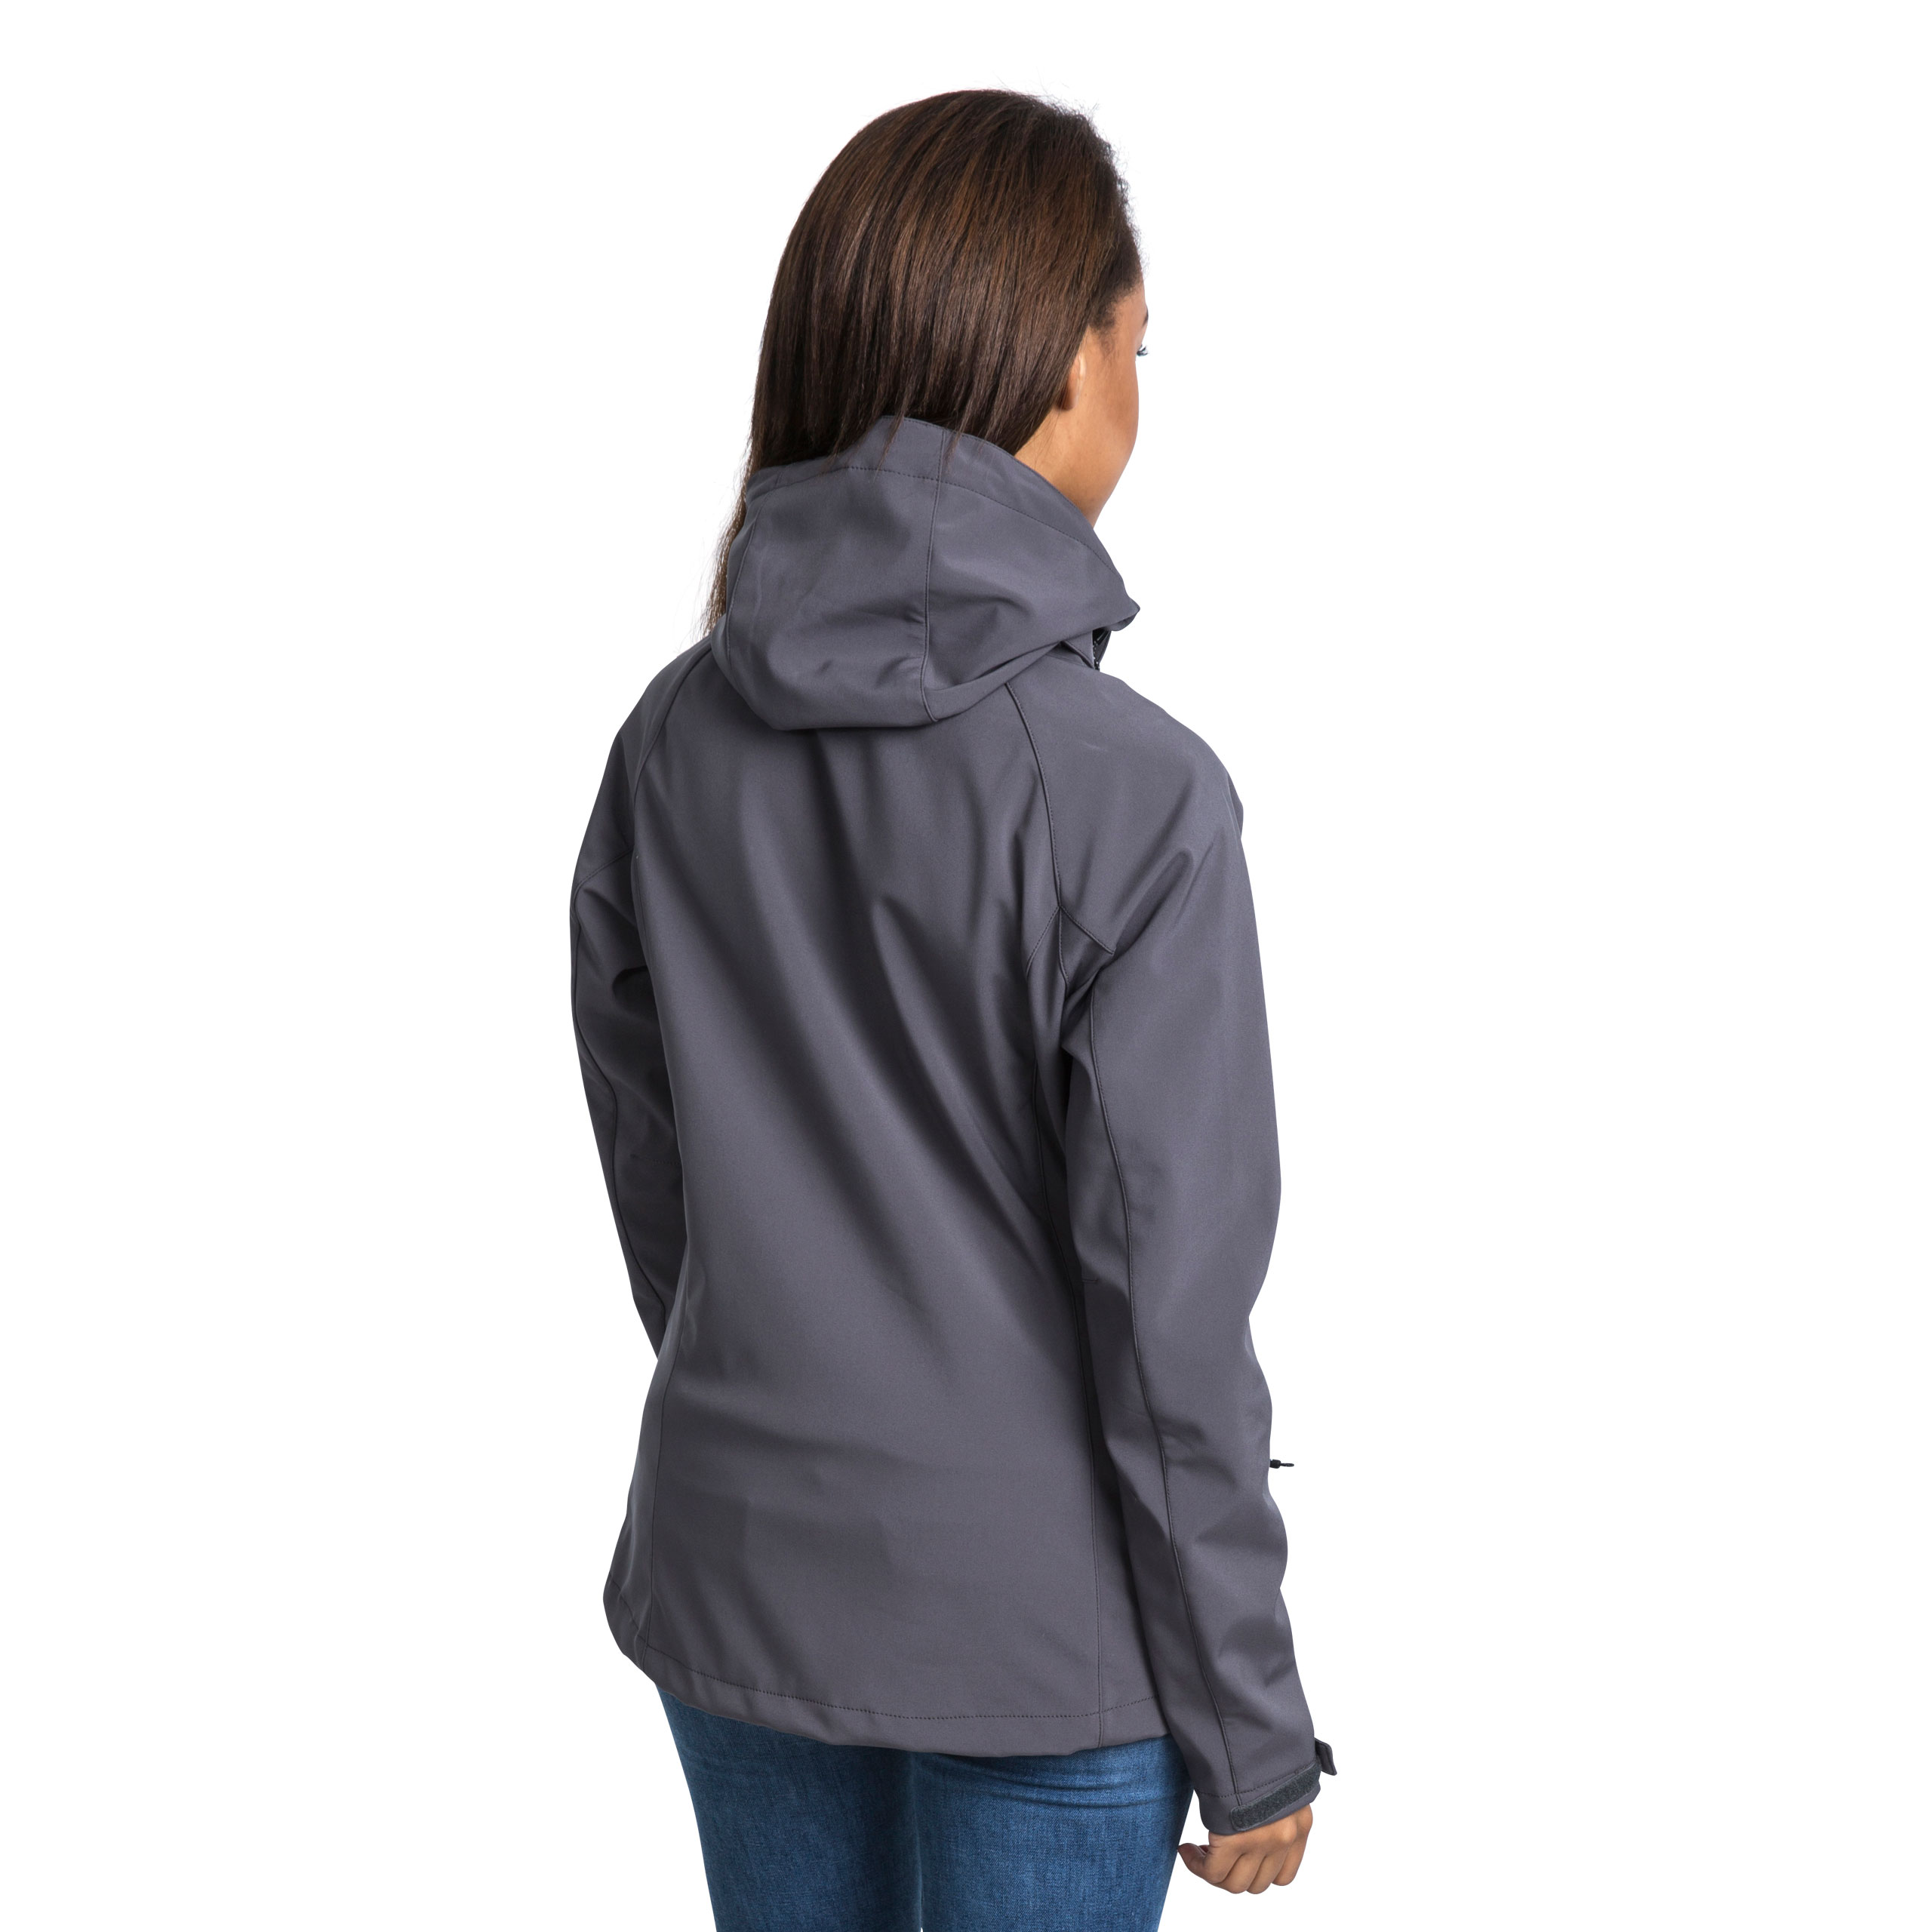 Trespass-Lorina-Women-Softshell-Jacket-Waterproof-Windproof-and-Breathable thumbnail 15